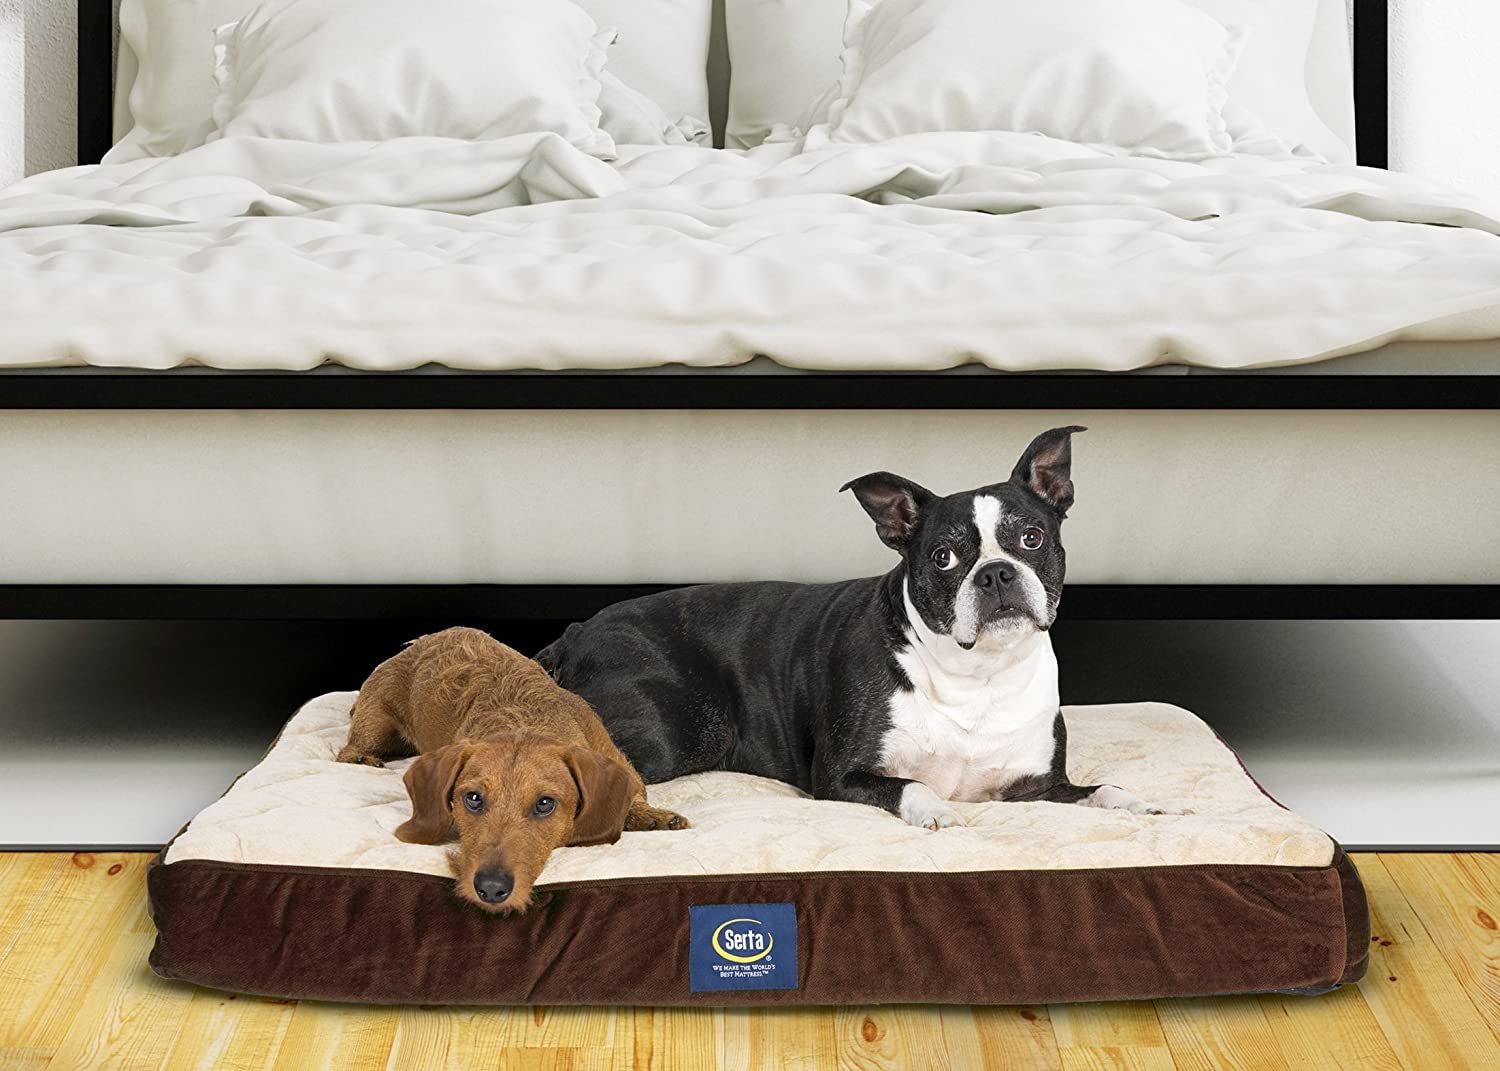 Dog beds that look like couches - Amazon Com Serta Orthopedic Quilted Pillowtop Dog Bed Large Brown Pet Supplies